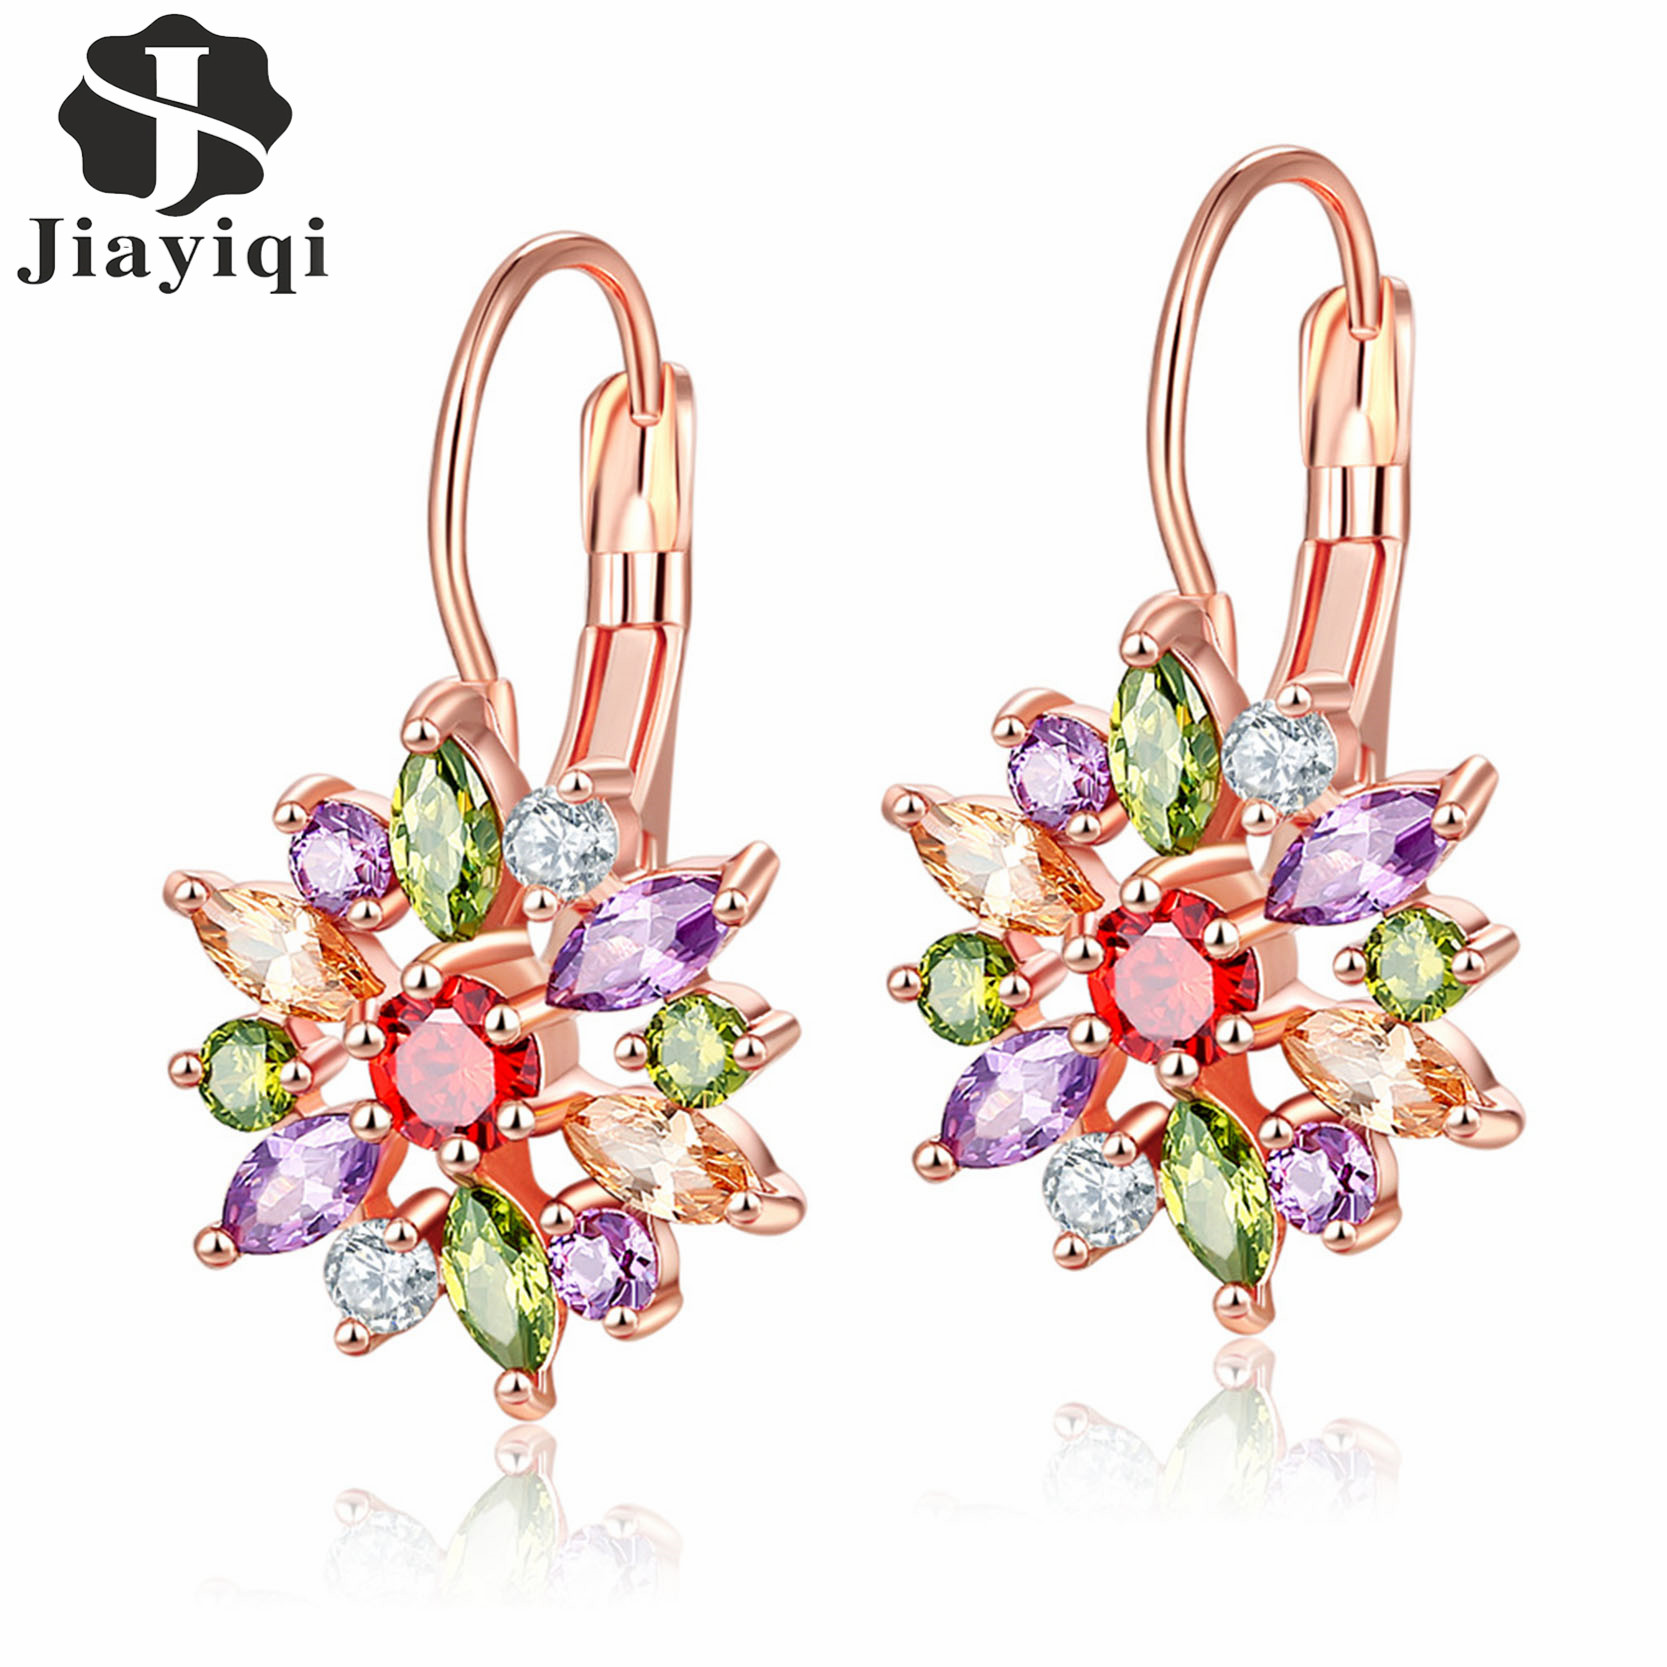 Hot Flower Design Multicolor Earrings Rose Gold Color AAA Cubic Zirconia Stud Earring For Women Luxury Jewelry Gift 2017